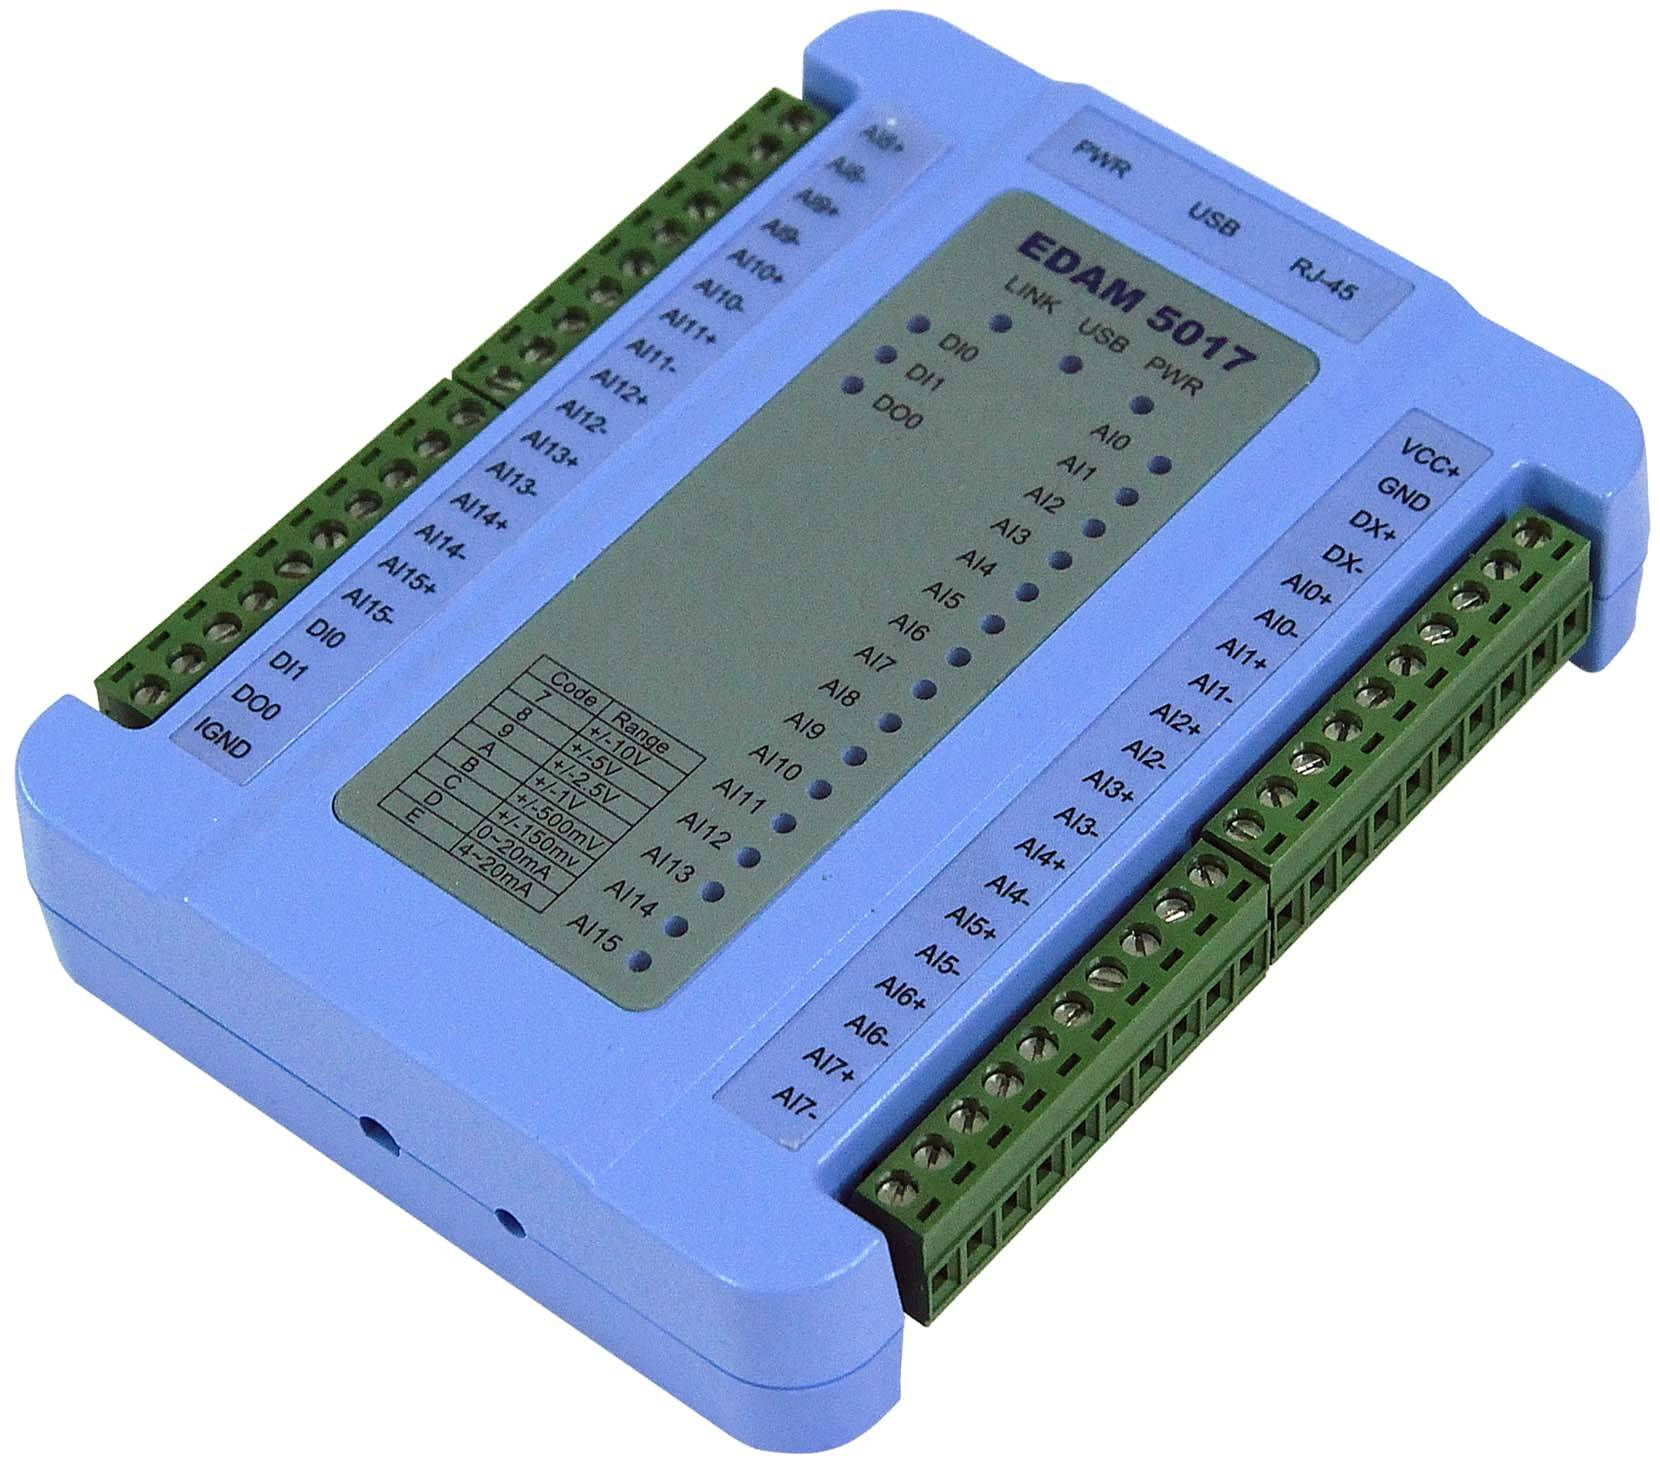 RS-485/ethernet/USB analog input remote I/O module